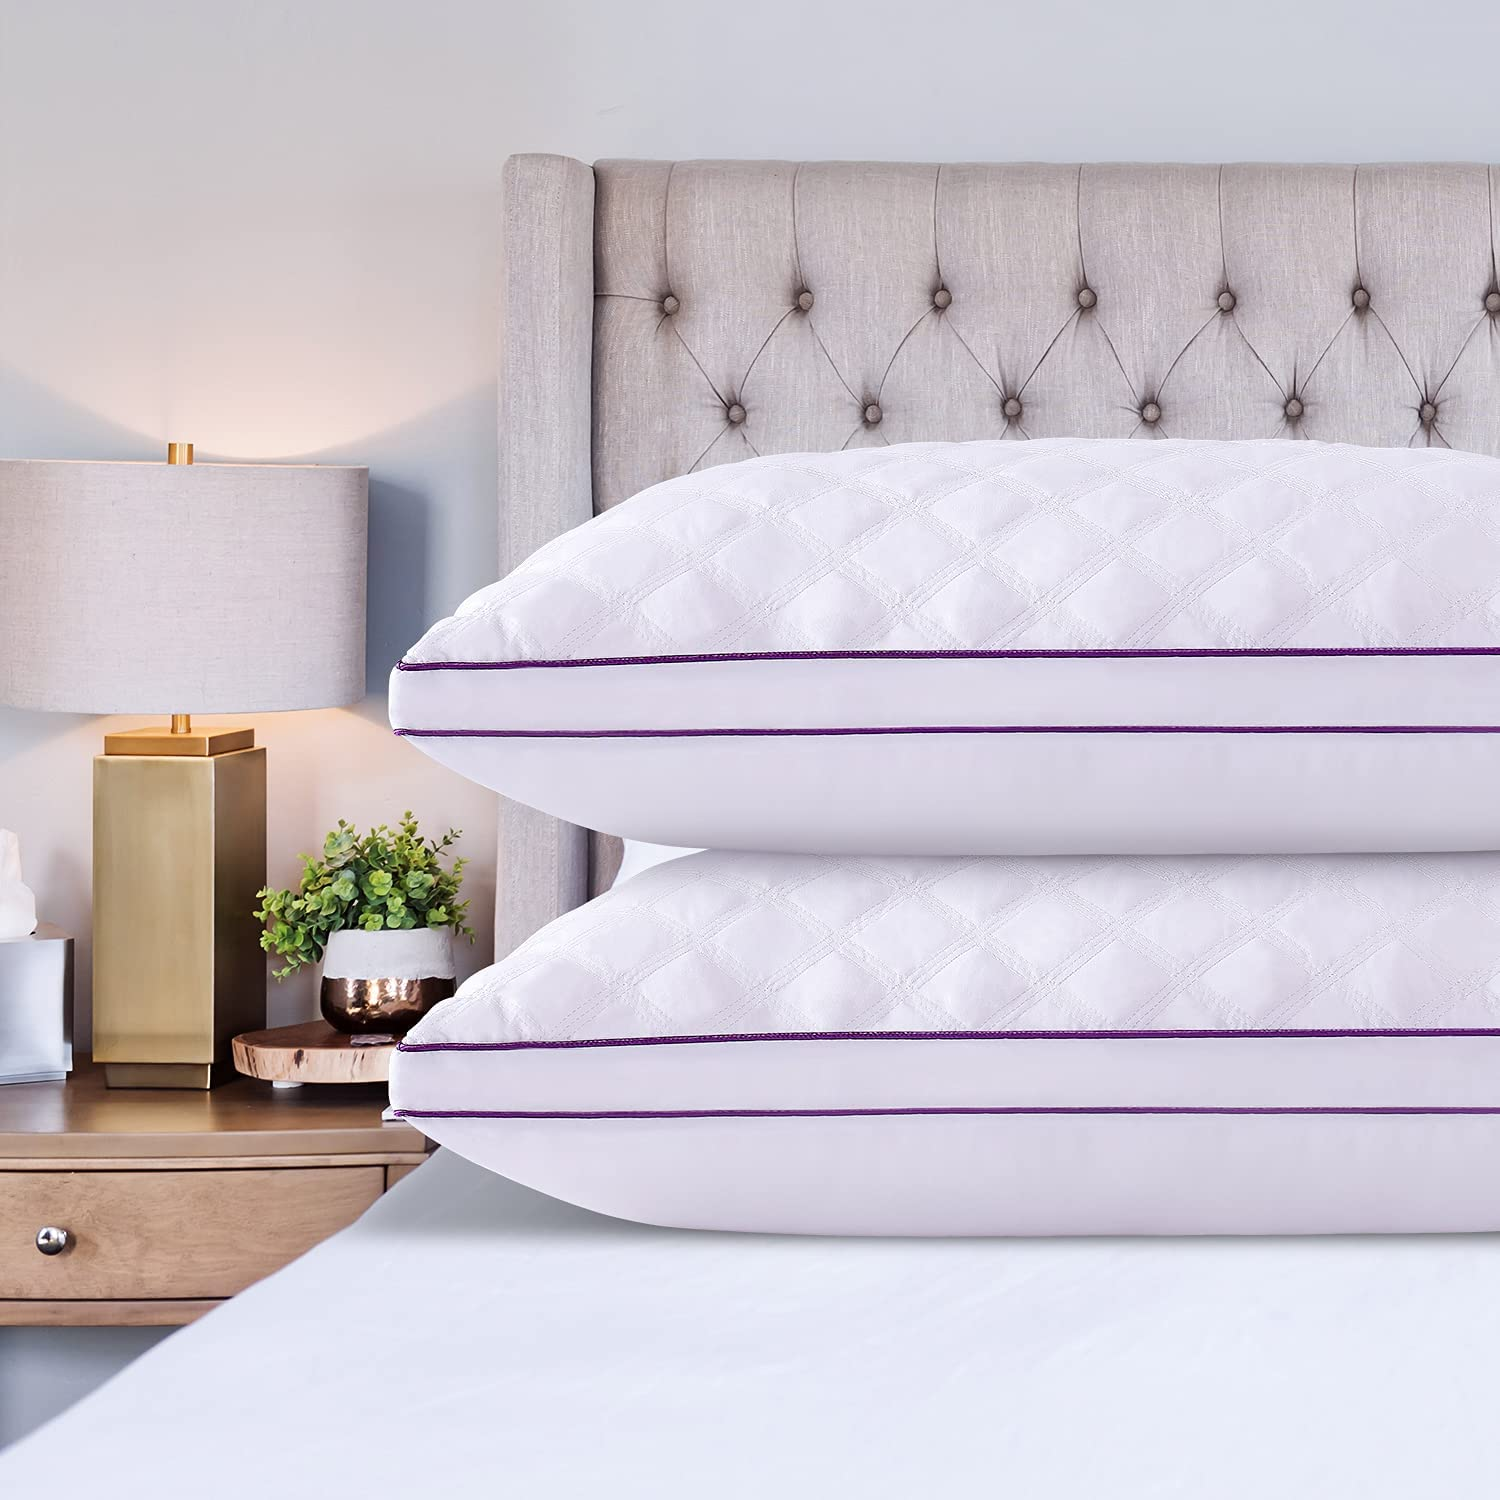 Washington Mall Amaredom Bed Pillows for Columbus Mall Sleeping Standard Pack Size 2